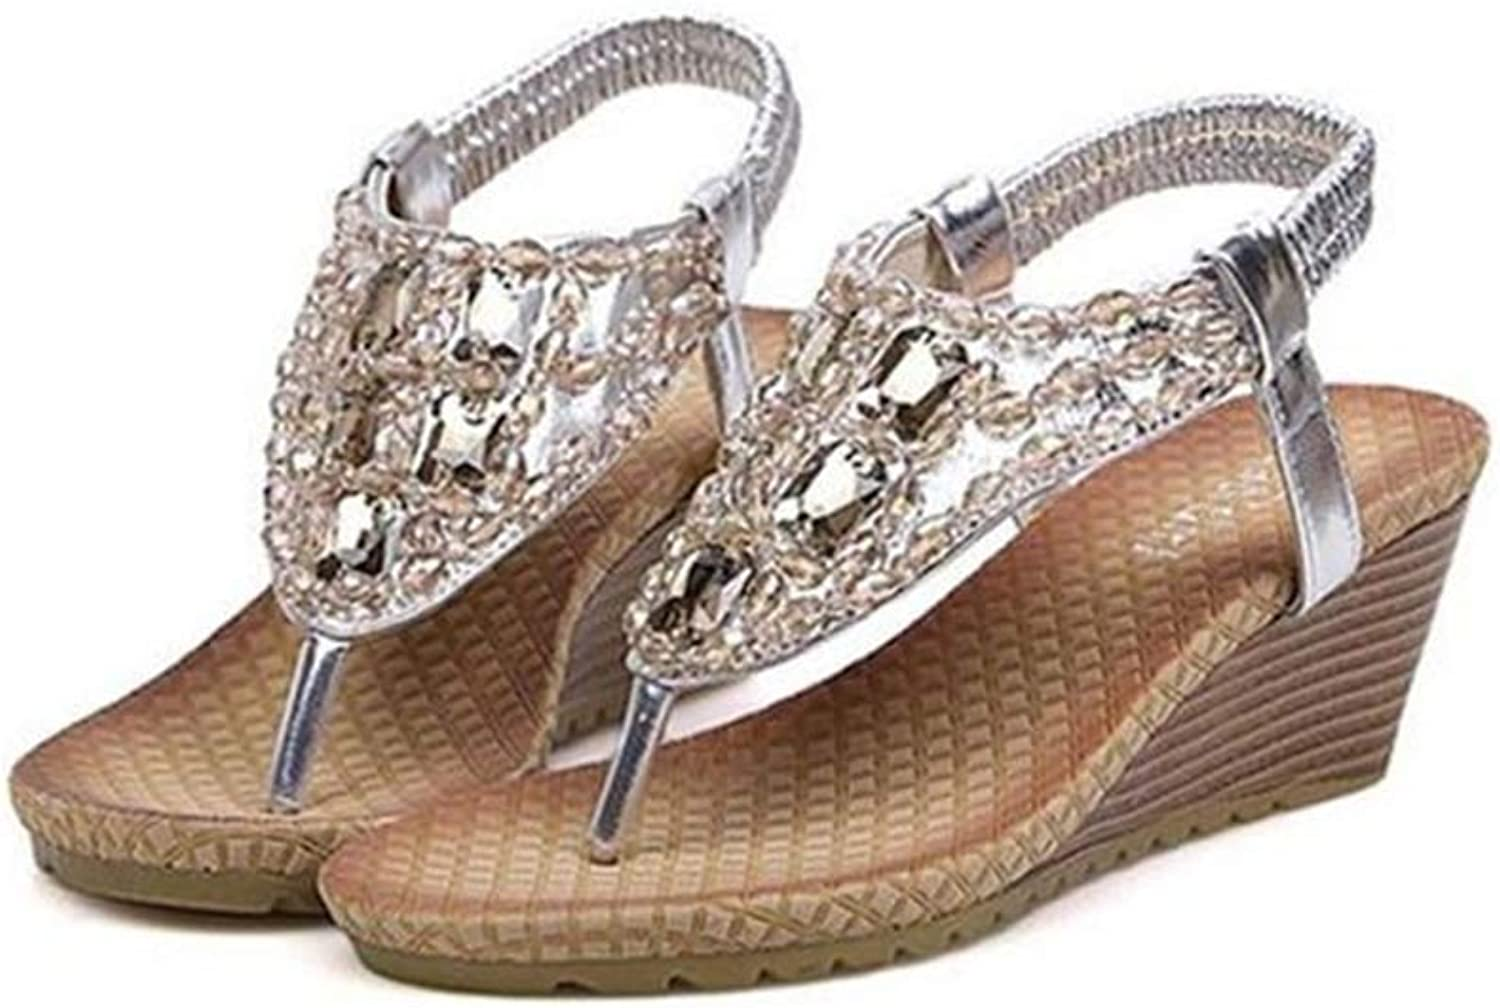 DBQWTY Women's Fashion Summer Workplace Leisure Water Drill Sandals Fashion Open-Toed Sandals Slope-Heeled Sandals